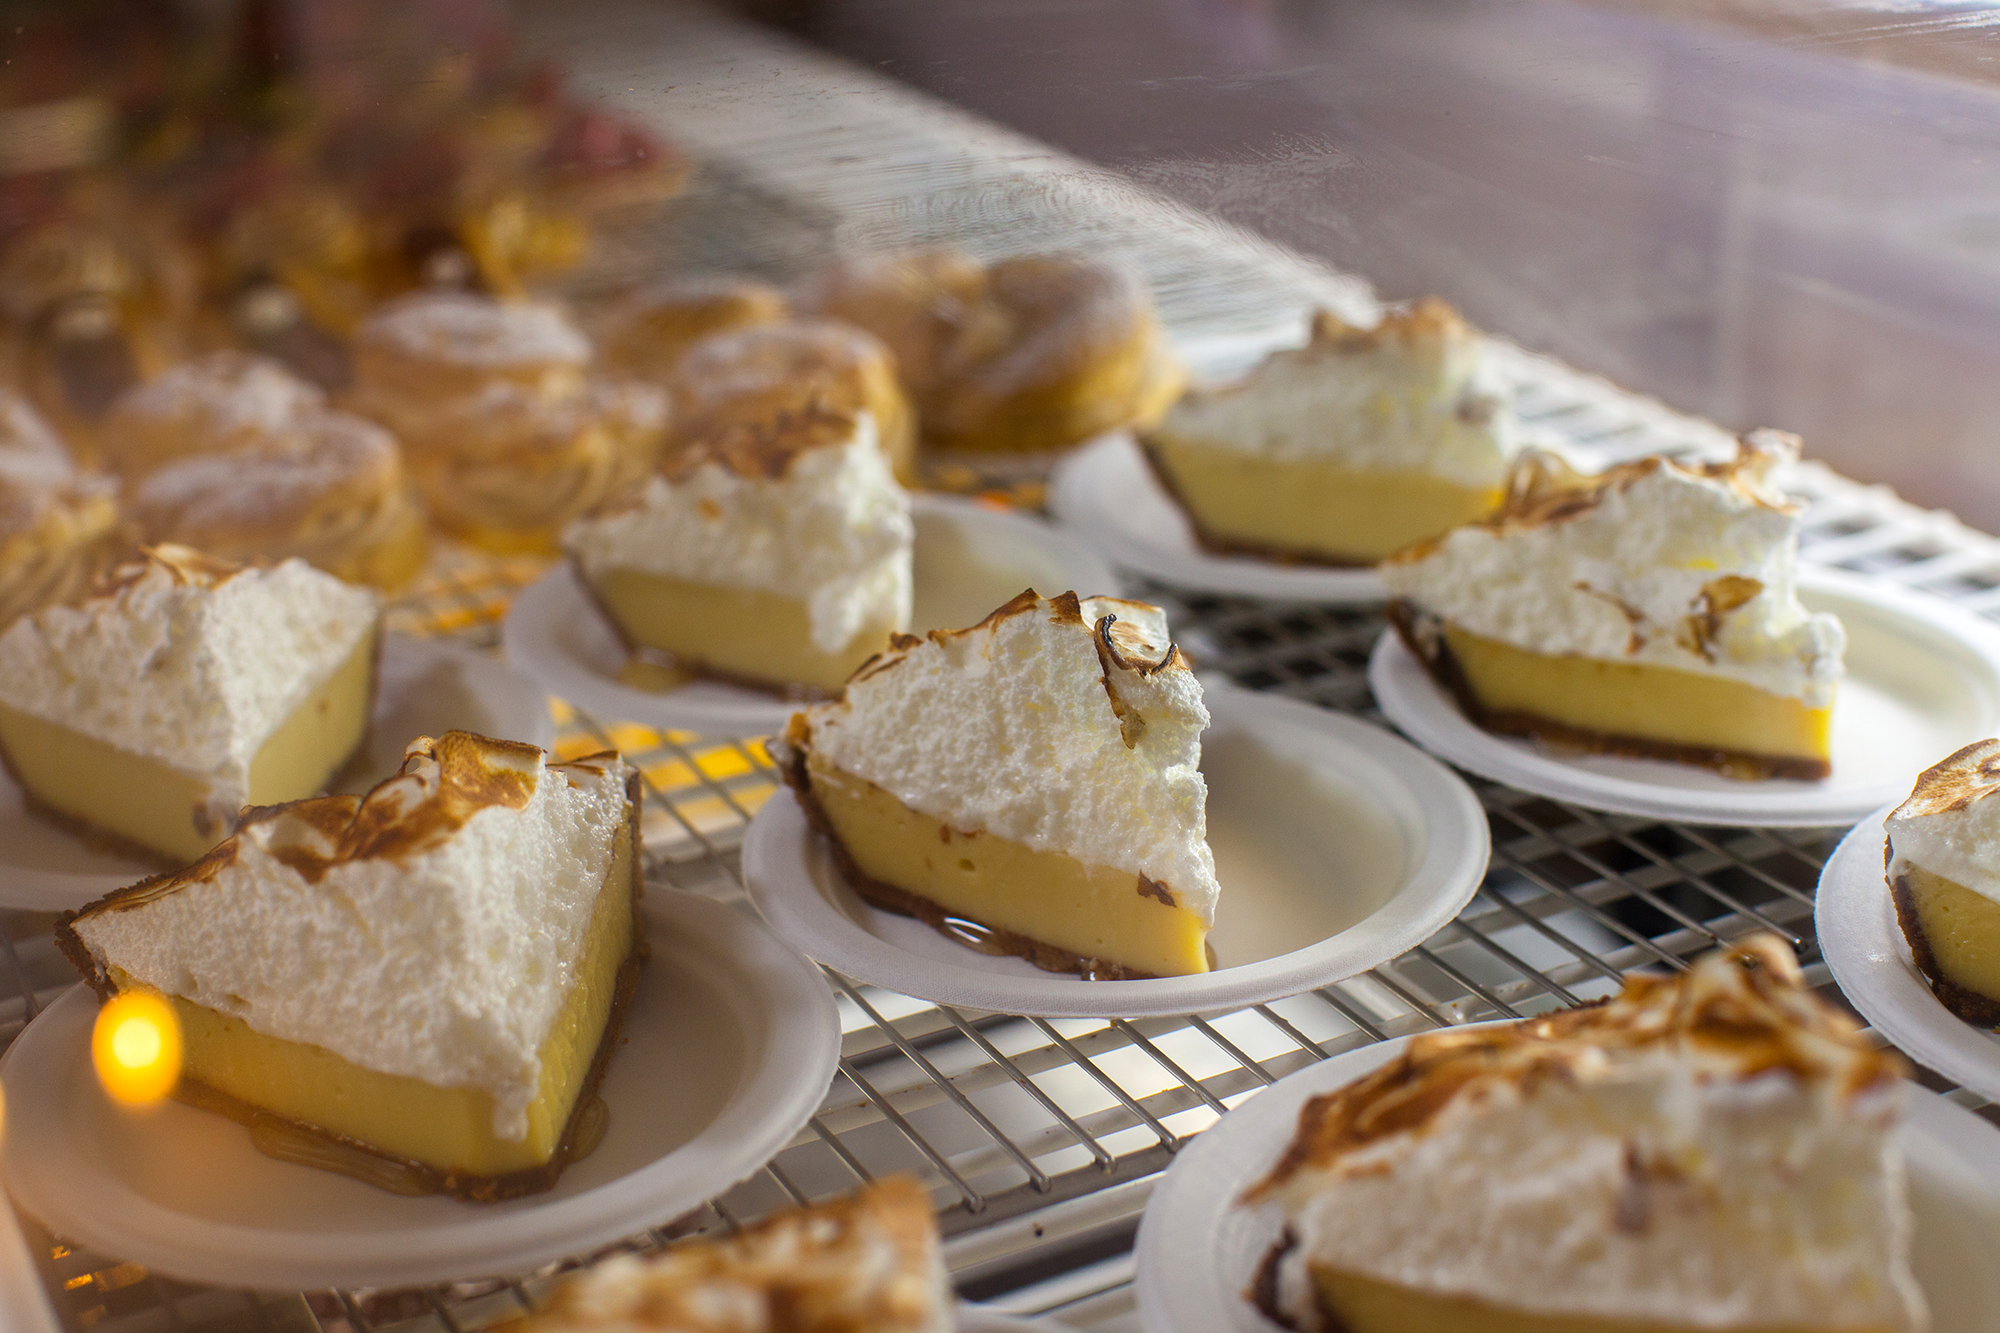 Key Lime Pie for days. Need I say more?